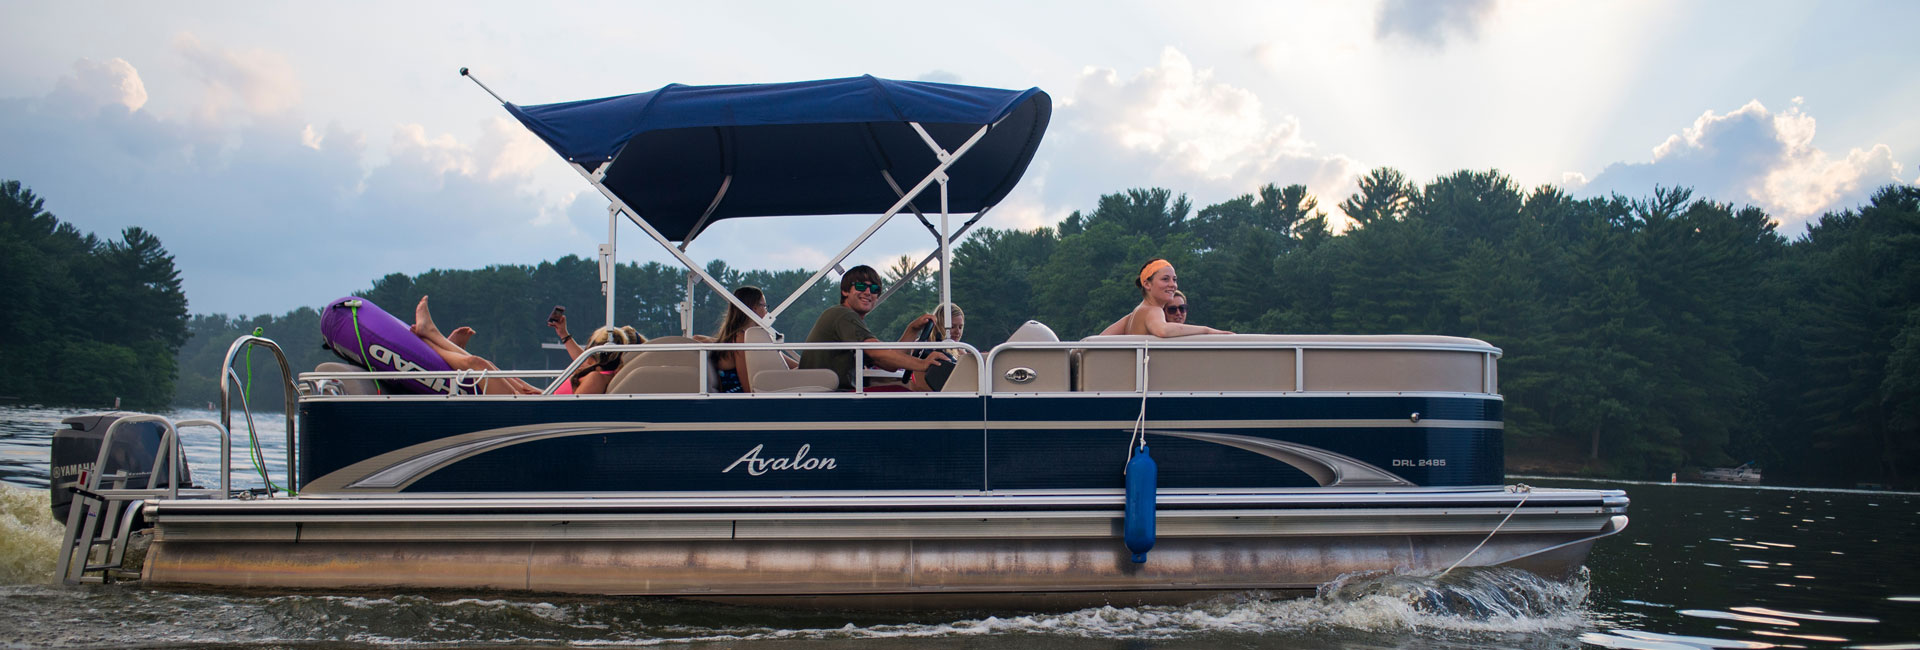 Avalon Pontoon Rentals on Lake Delton